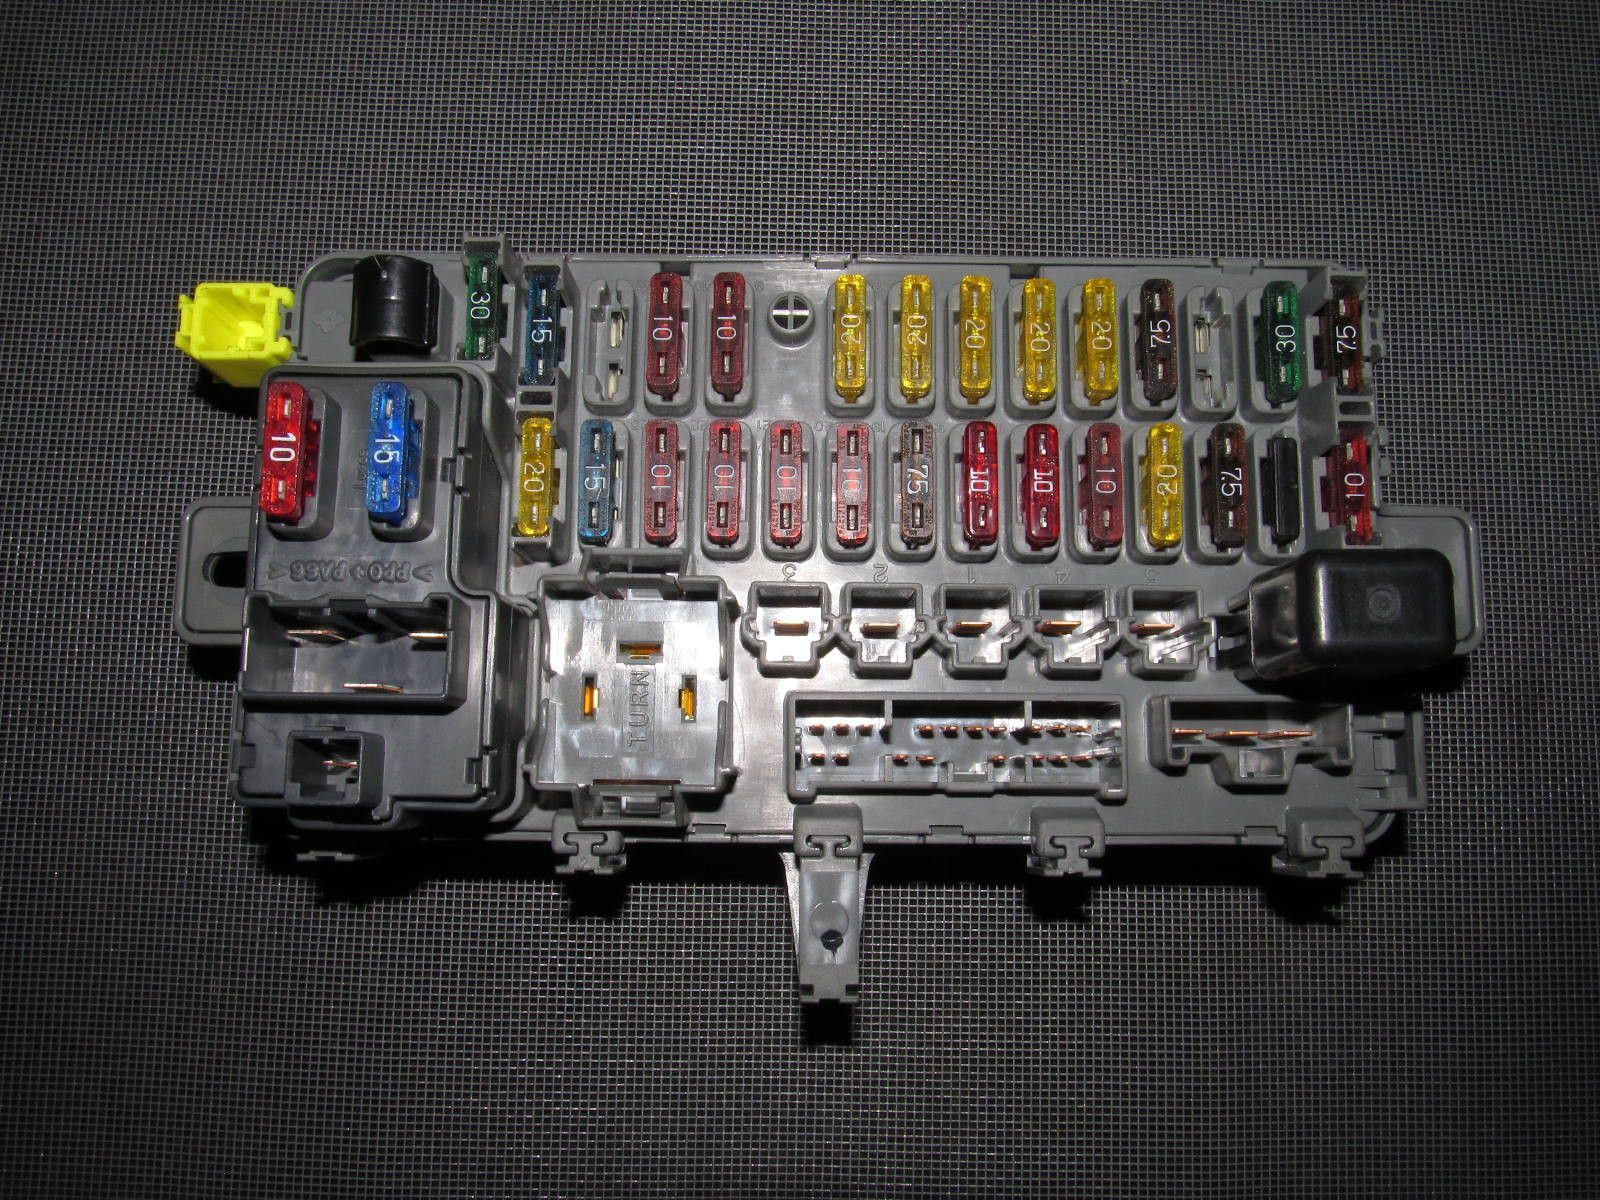 medium resolution of 94 01 acura integra oem interior fuse box with integration unit 1994 buick lesabre fuse diagram fuse diagram for 1994 acura integra